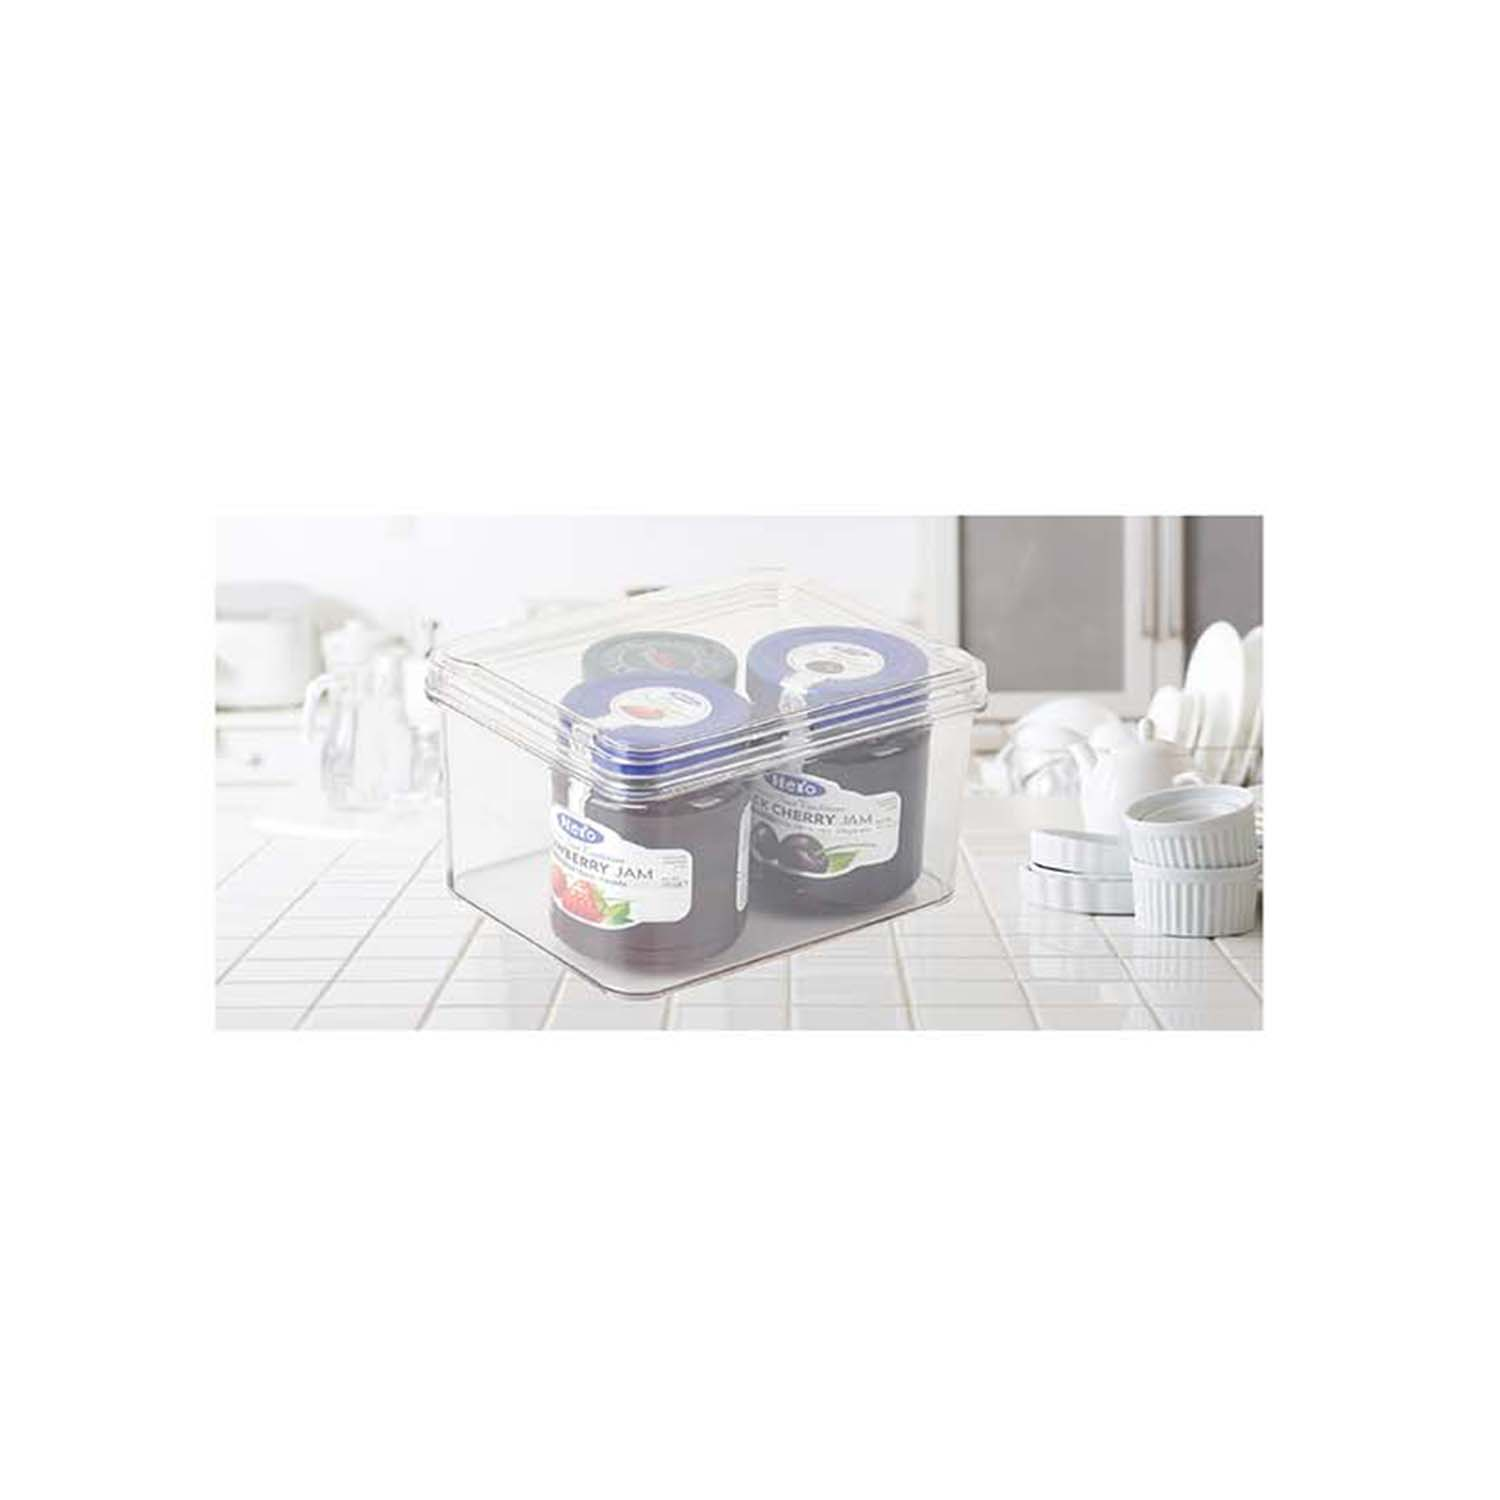 Fridge & freezer Bin With Lid 17.6X13.8X10.9cm